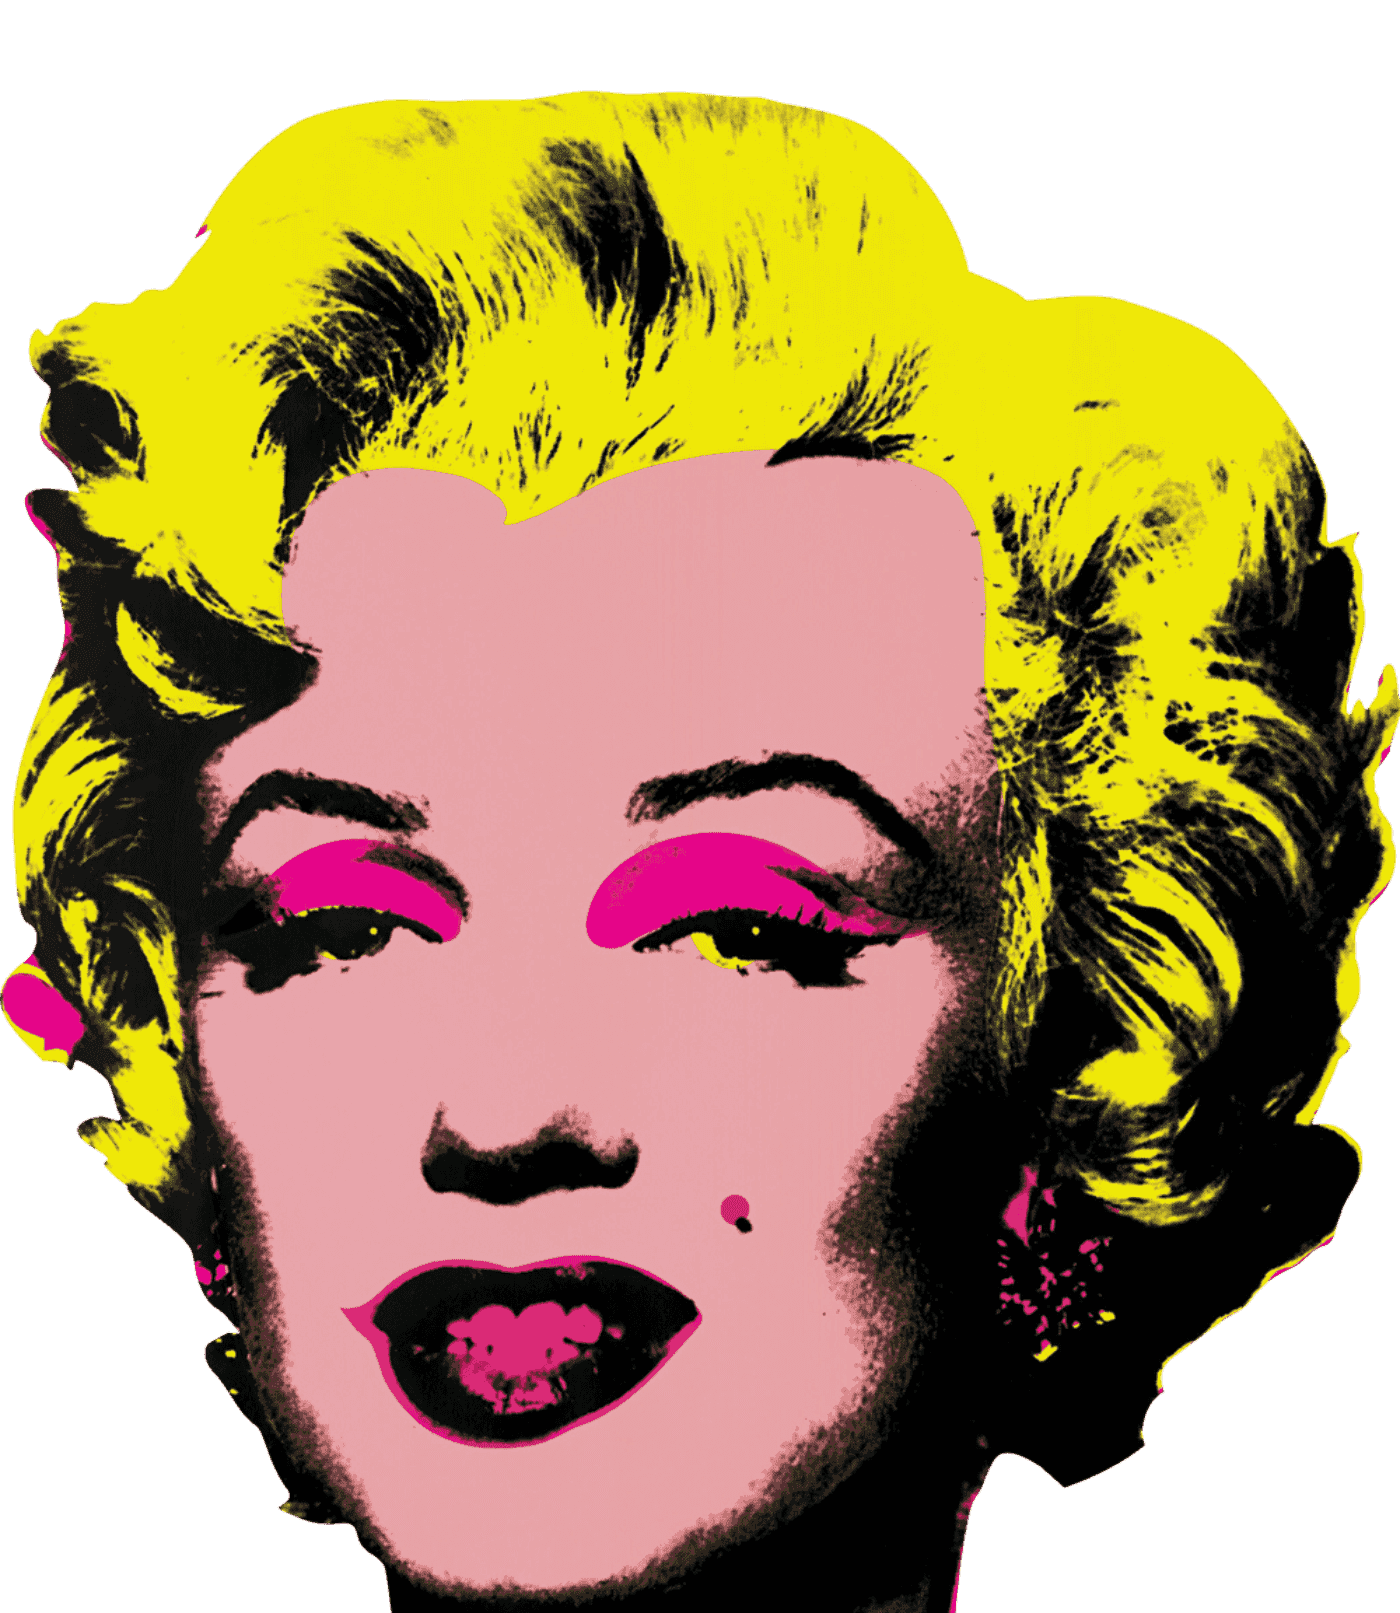 An Andy Warhol Exhibition - Warhol Revisited